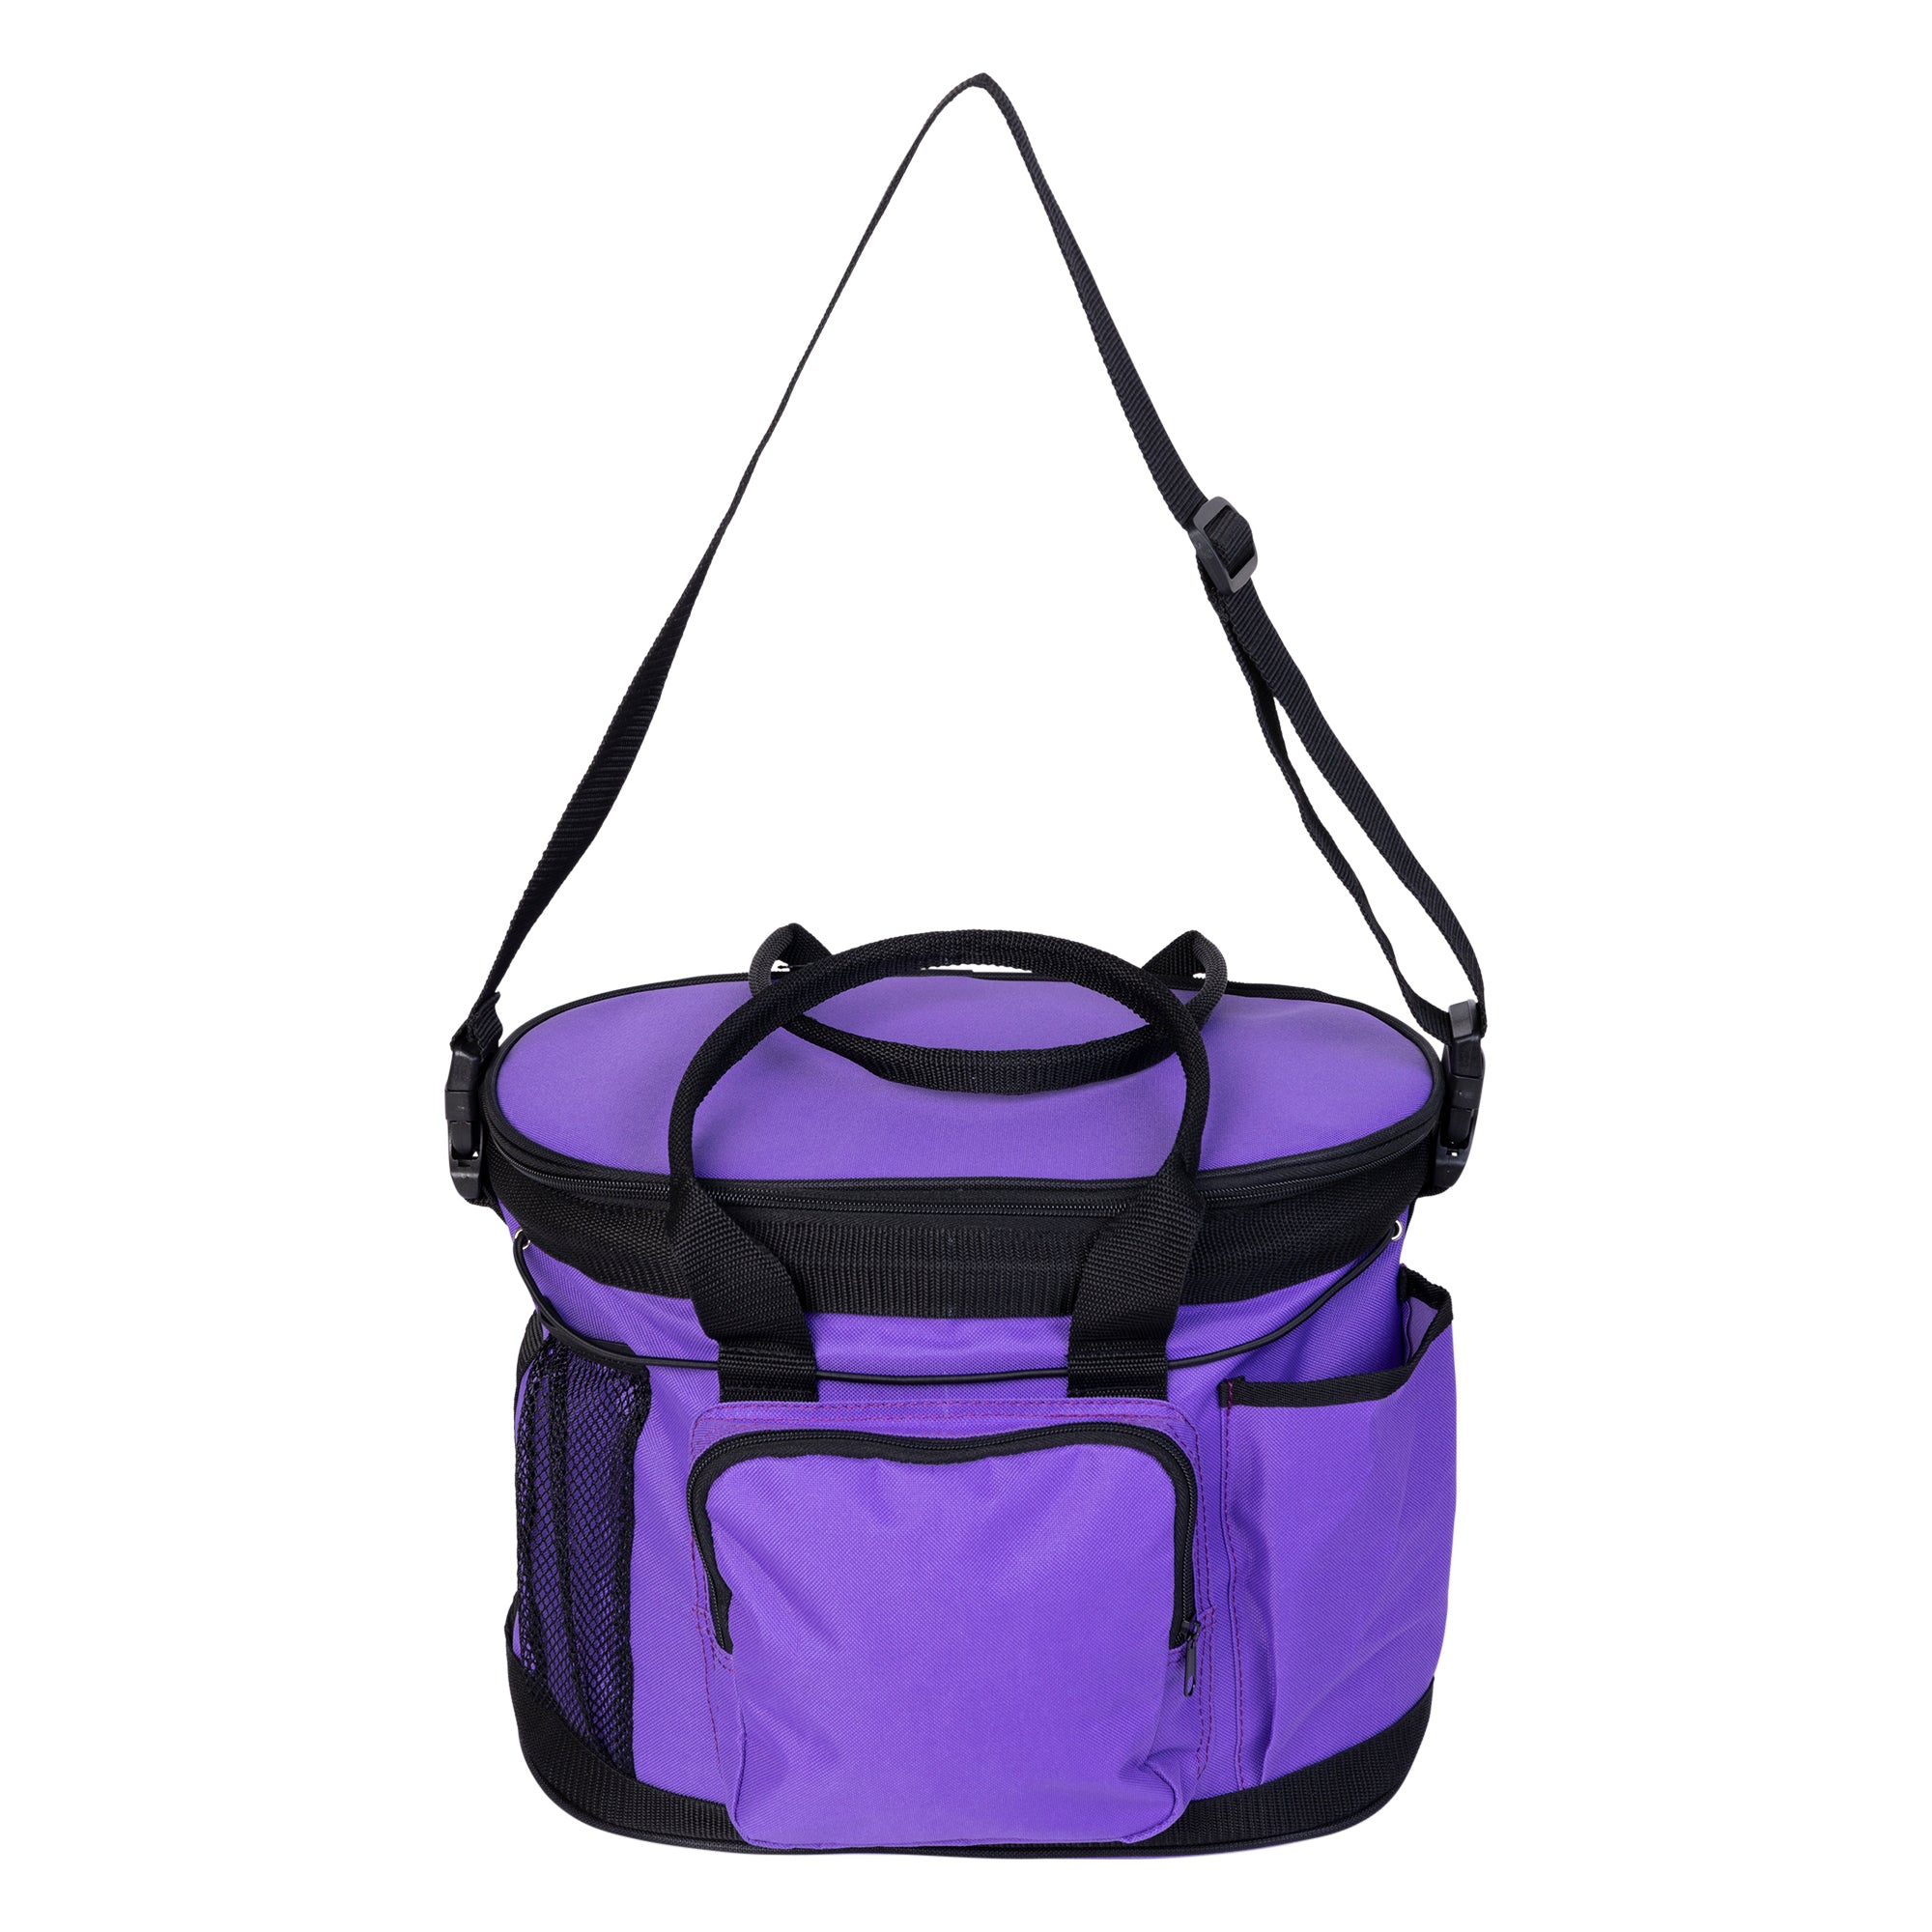 Huntley Equestrian Deluxe Grooming Bag, Purple